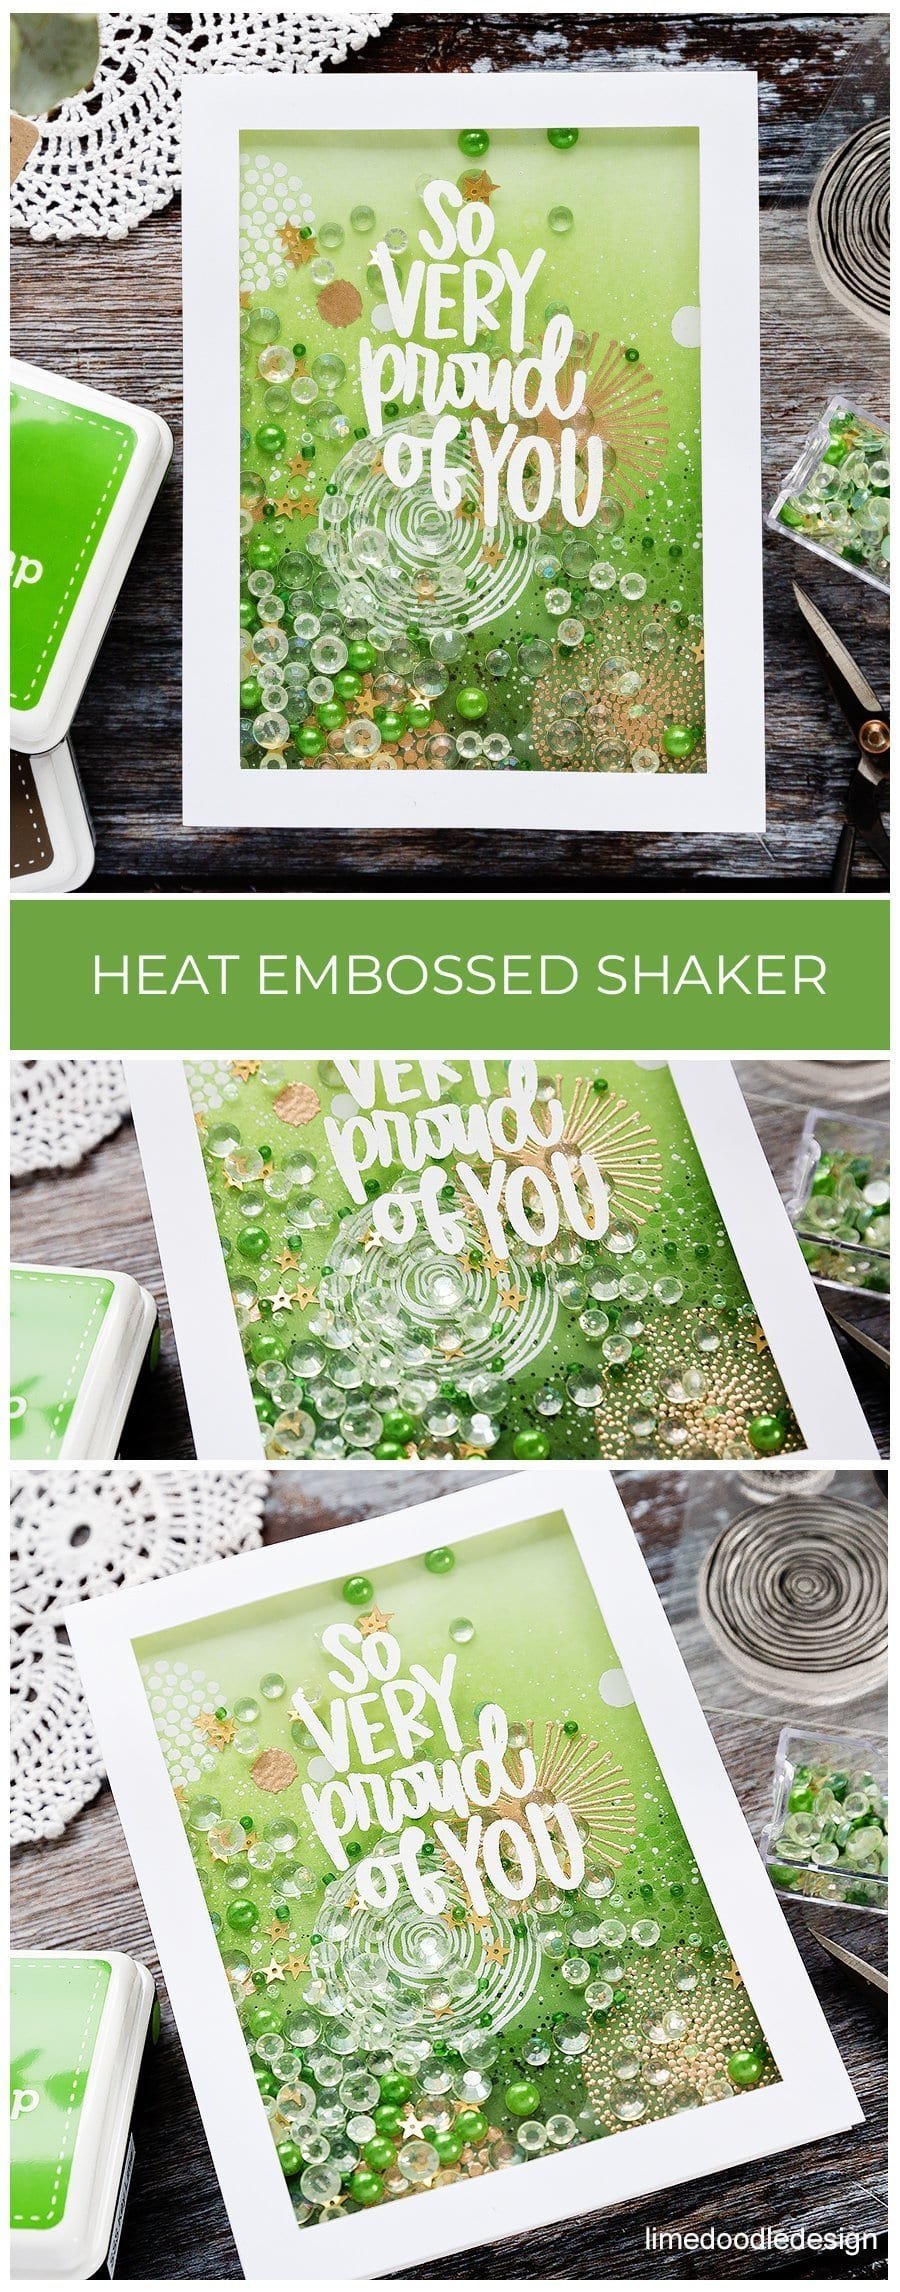 Video - layered heat embossed pattern over ink blended background, shaker card by Debby Hughes using supplies from the March Card Kit from Simon Says Stamp. Find out more here: https://limedoodledesign.com/2019/02/video-layered-heat-embossed-shaker/